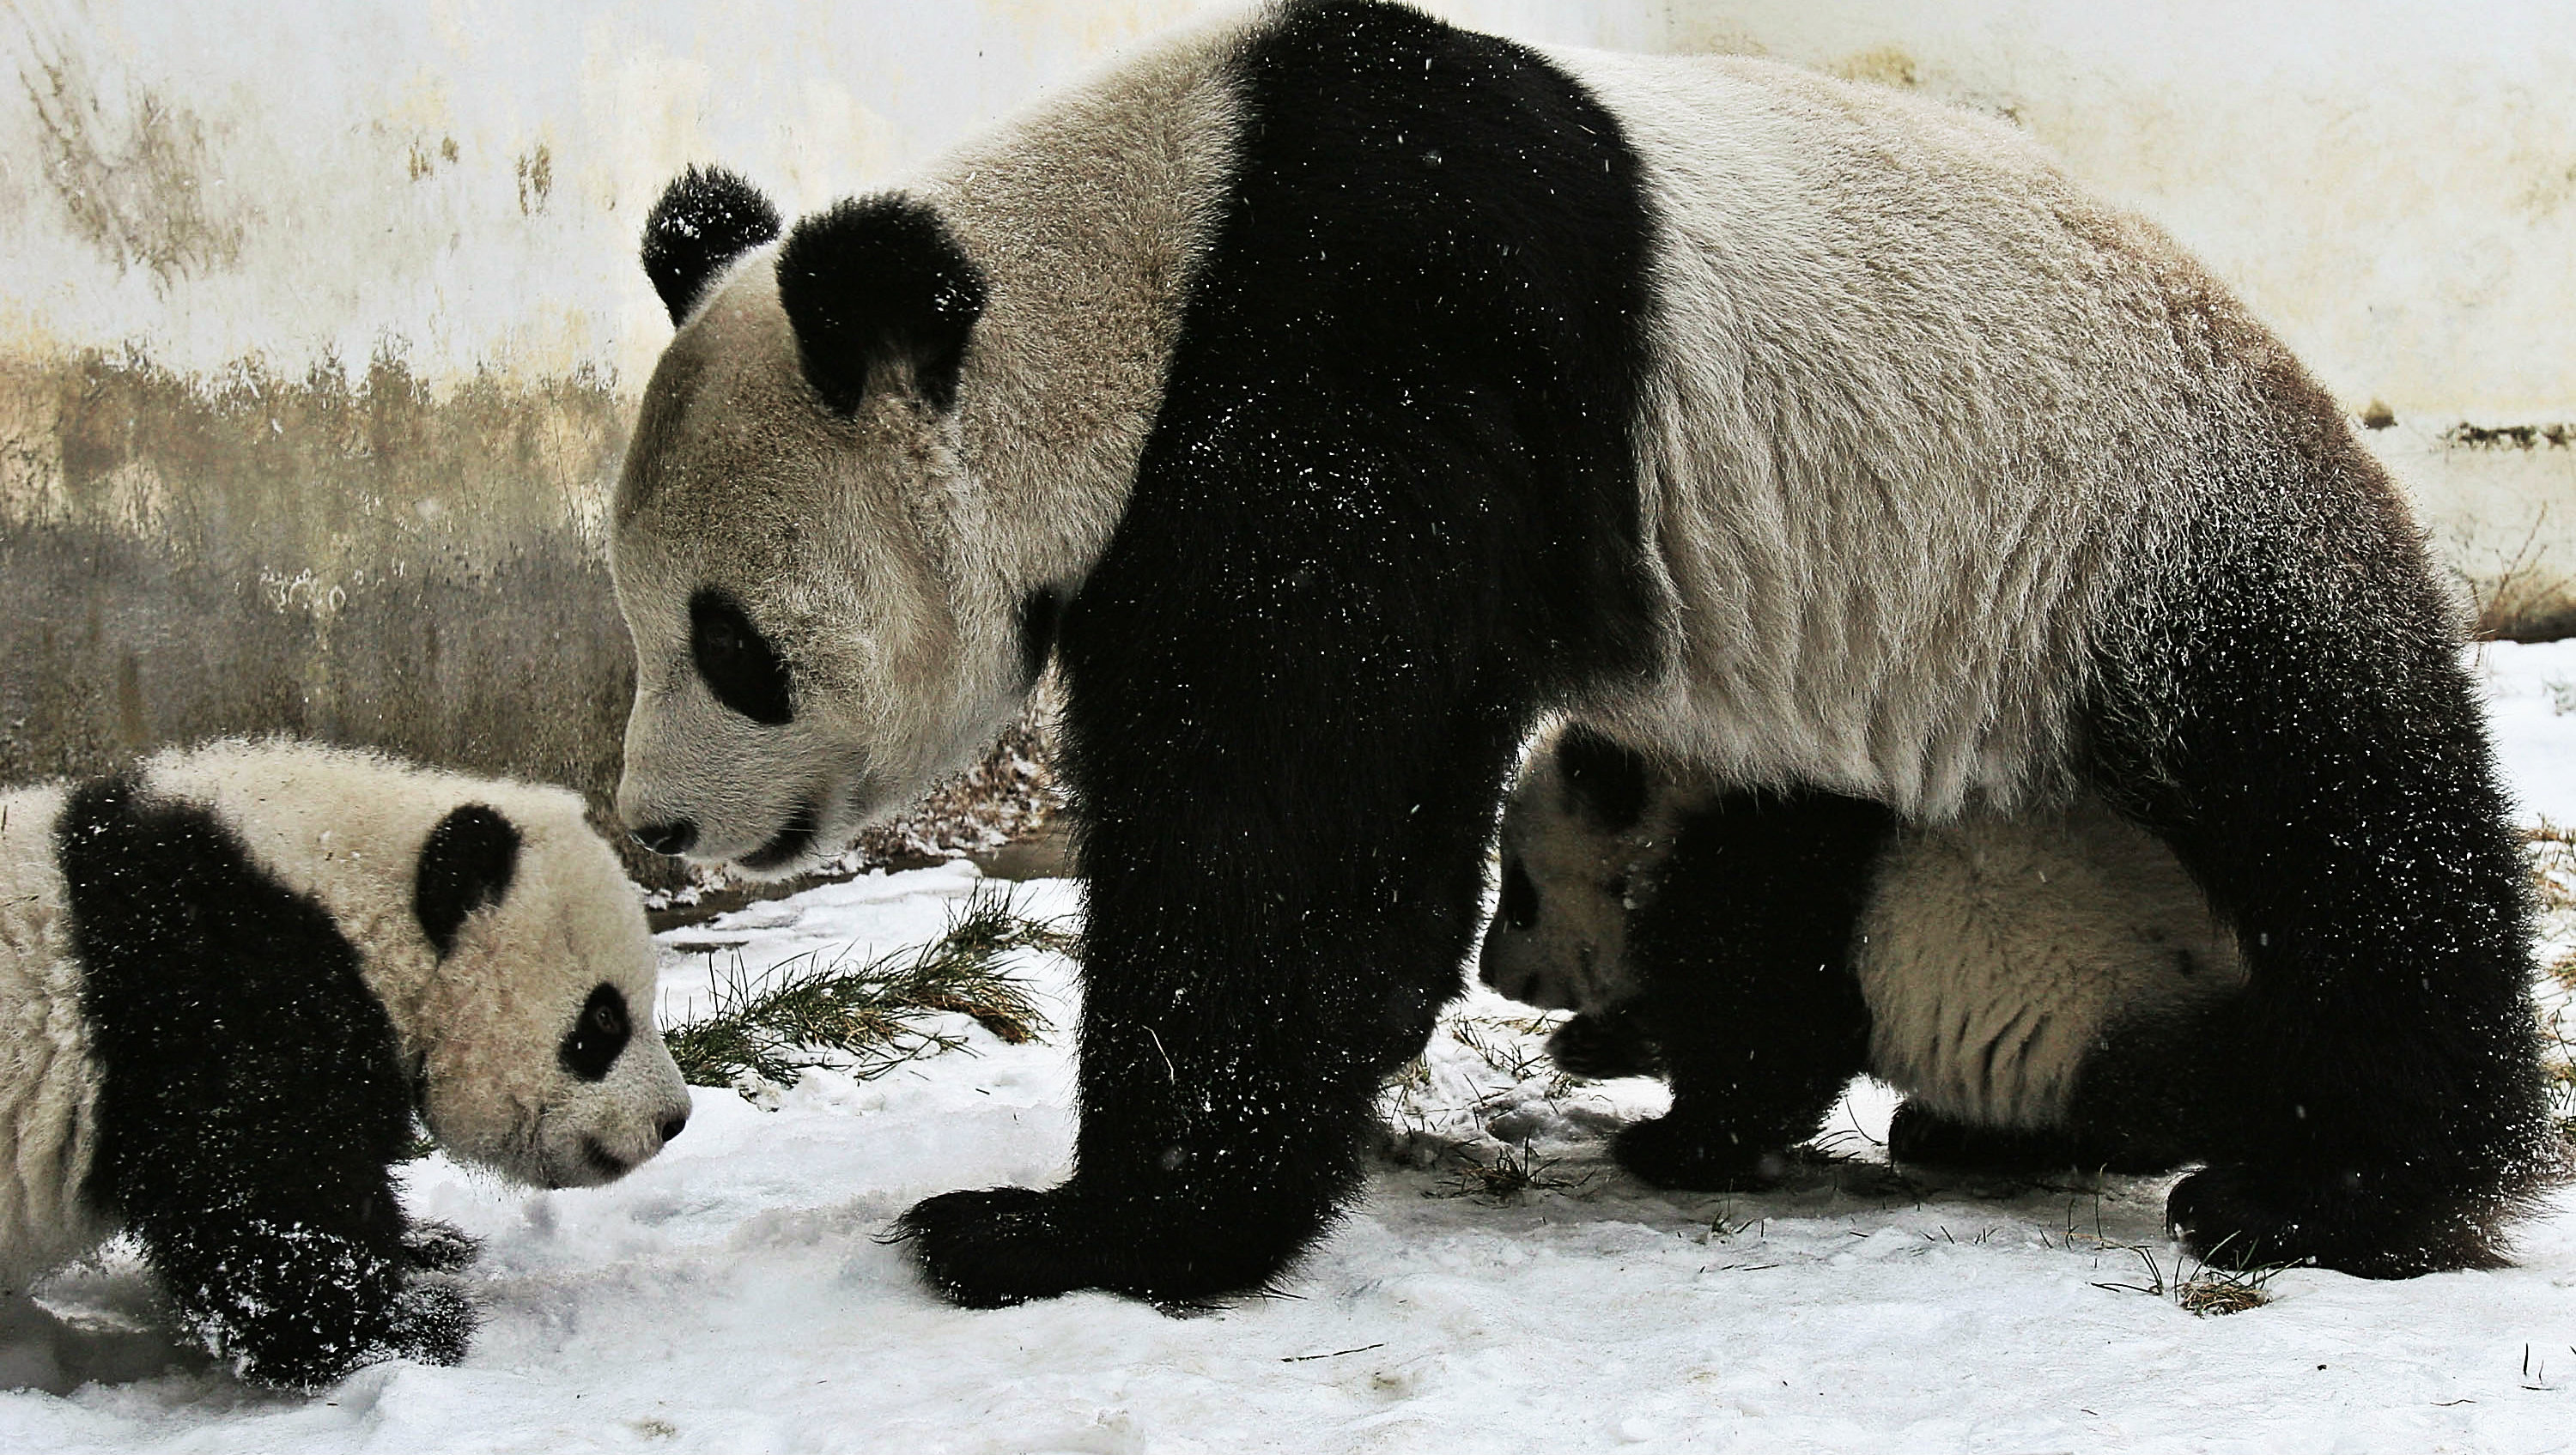 Researchers Care Panda At The Wolong Giant Panda Bear Research Center (Photo by China Photos/Getty Images)